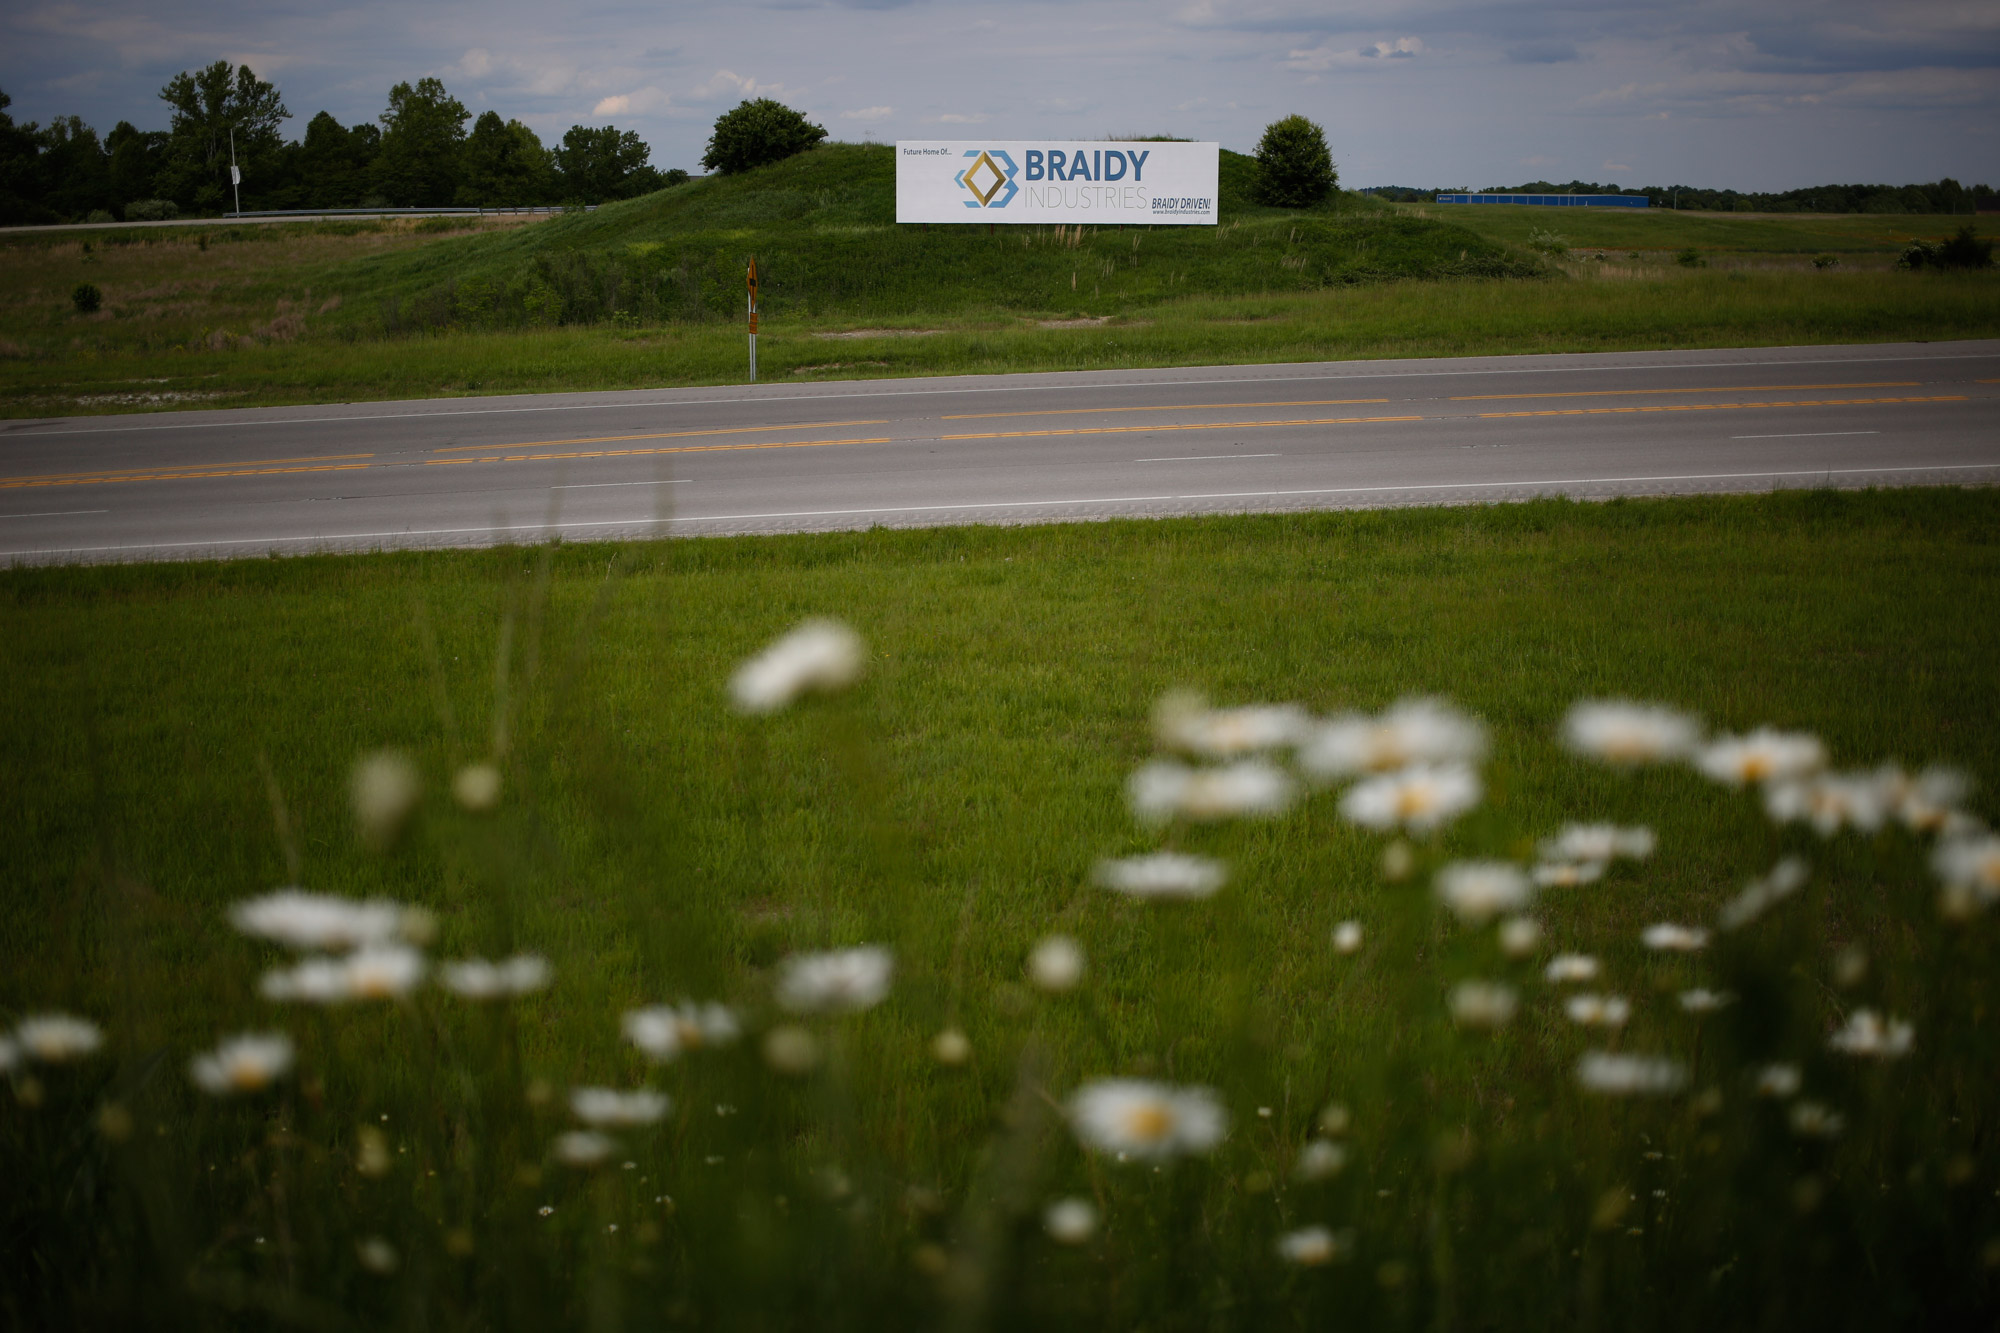 A Braidy sign looms over the future location of the company's aluminum mill in northeastern Kentucky